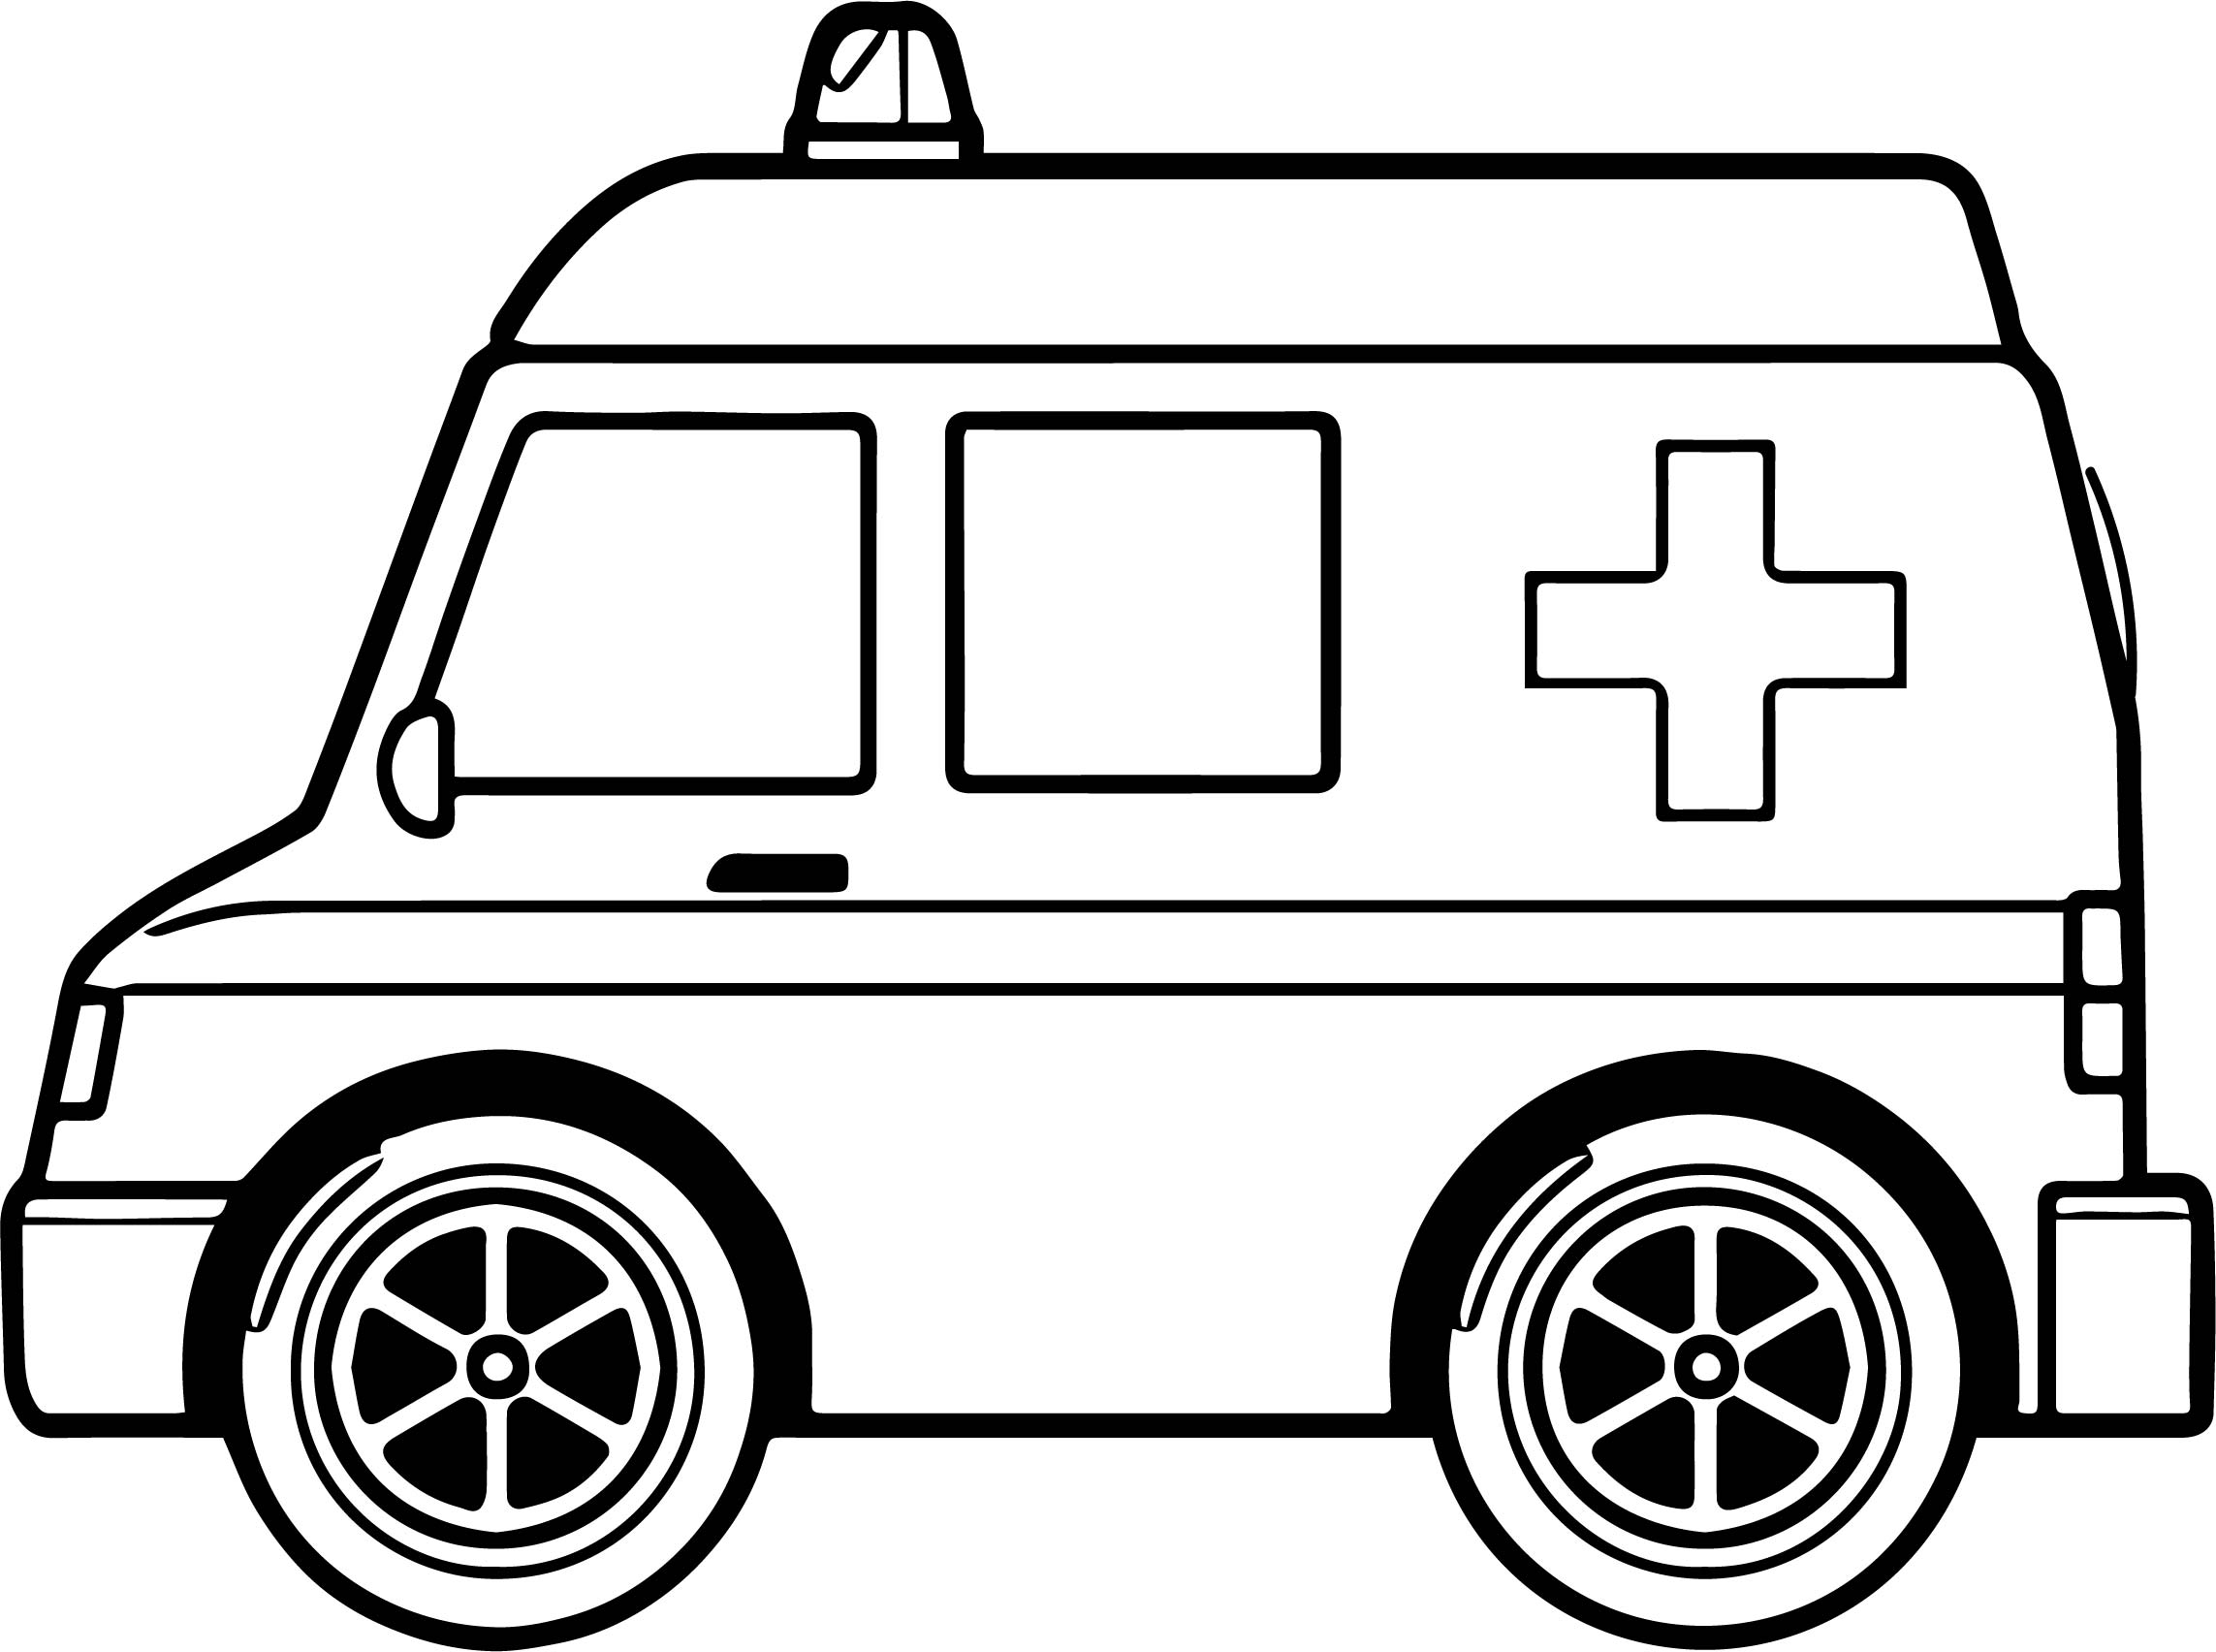 Ambulance Image | Free download on ClipArtMag